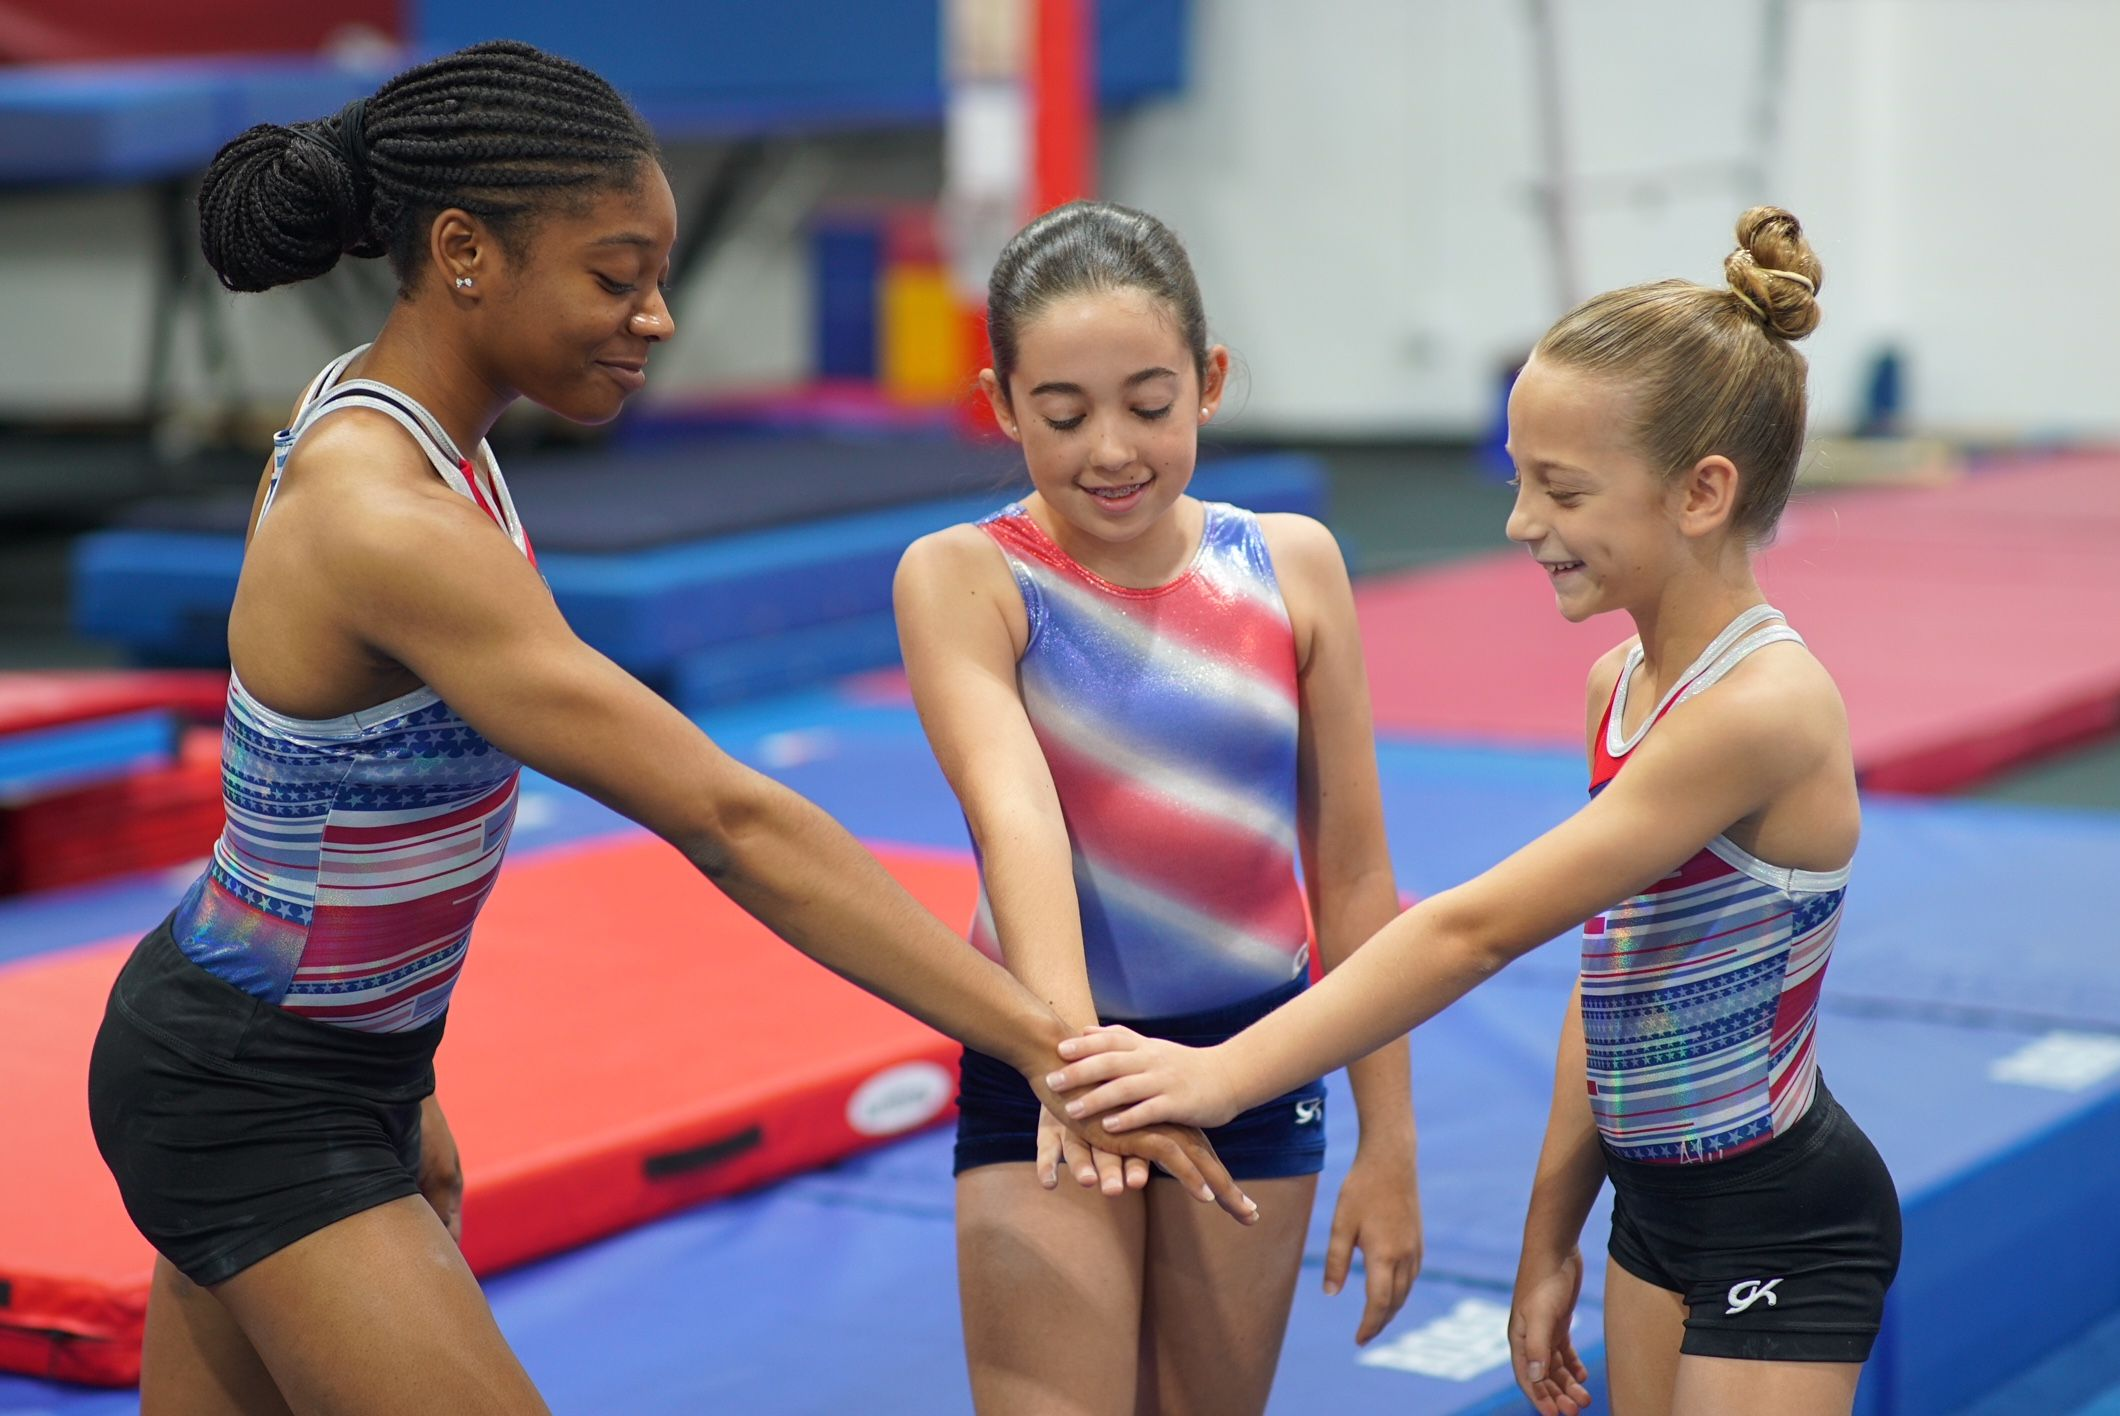 Dezer Gymnastics Training Center Starts a New Era in South Florida